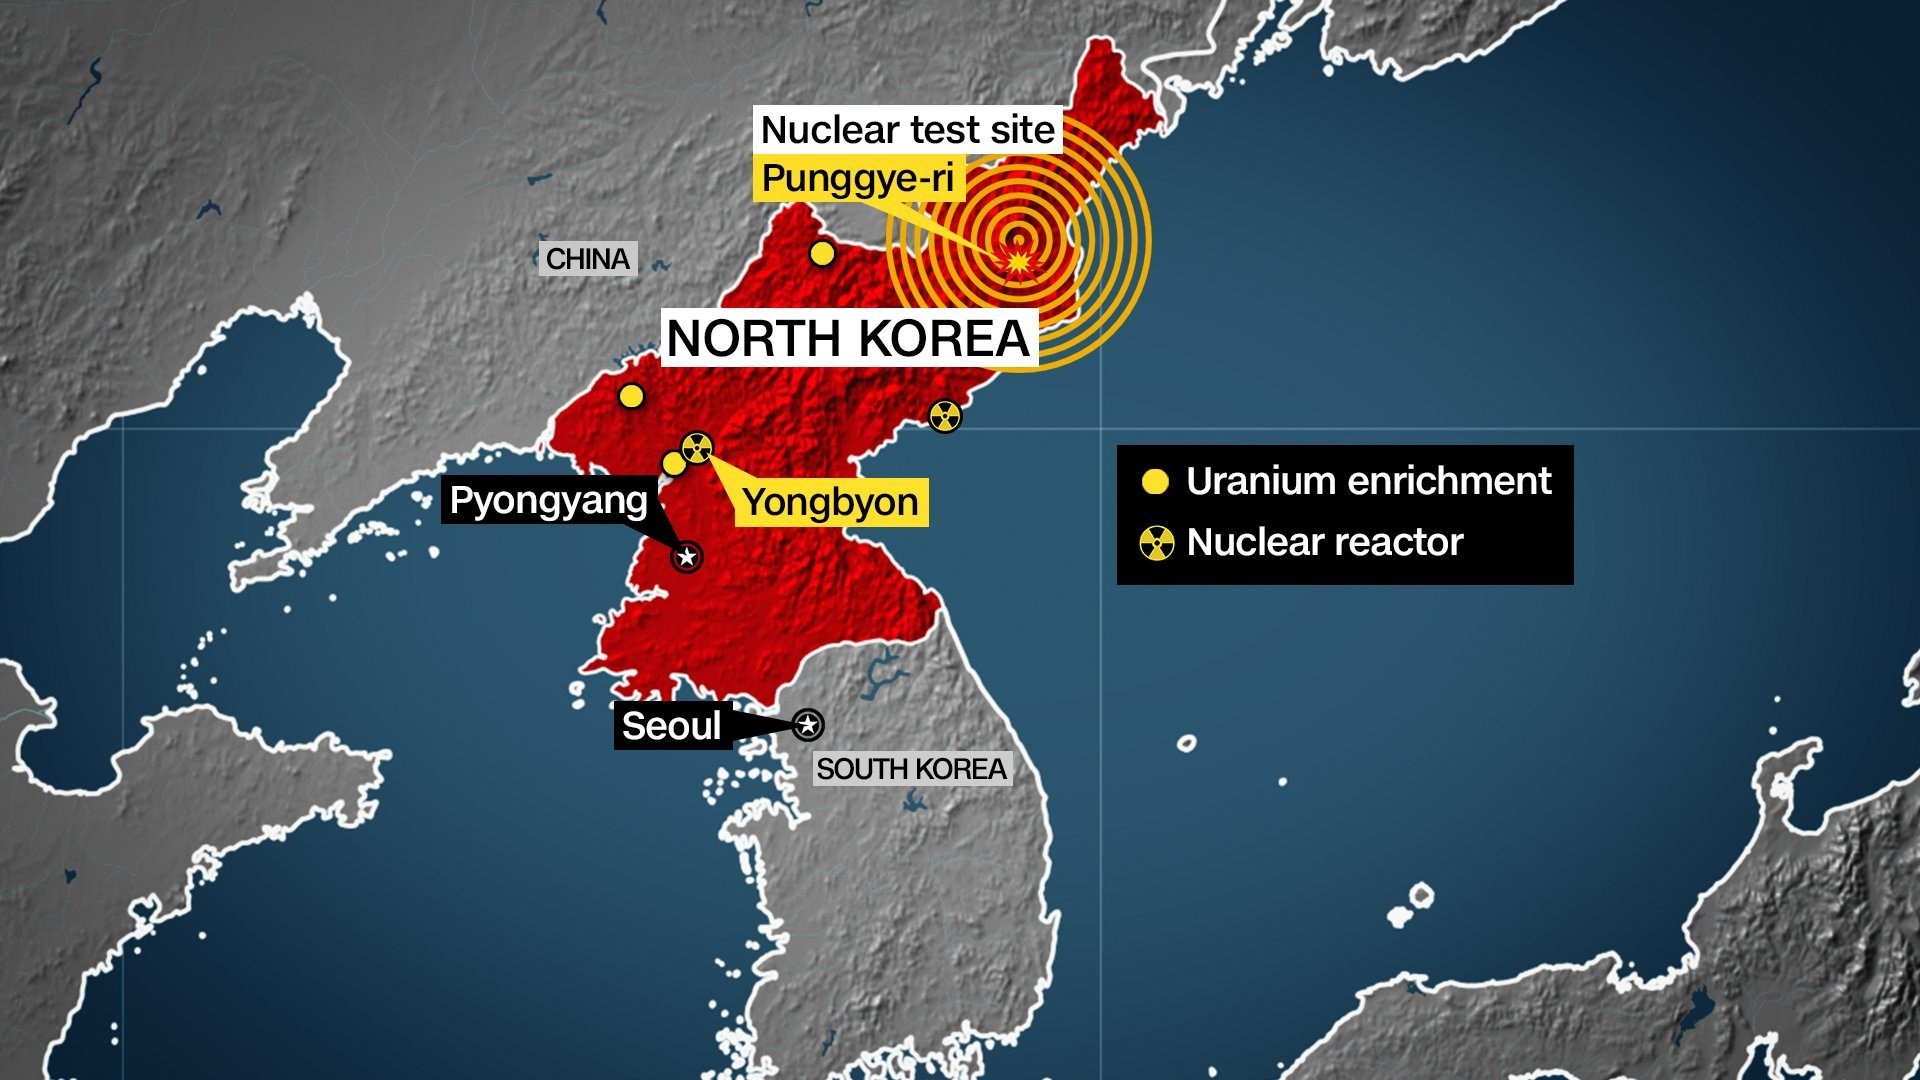 Fresh nuclear test suspected for N. Korea's natural disaster